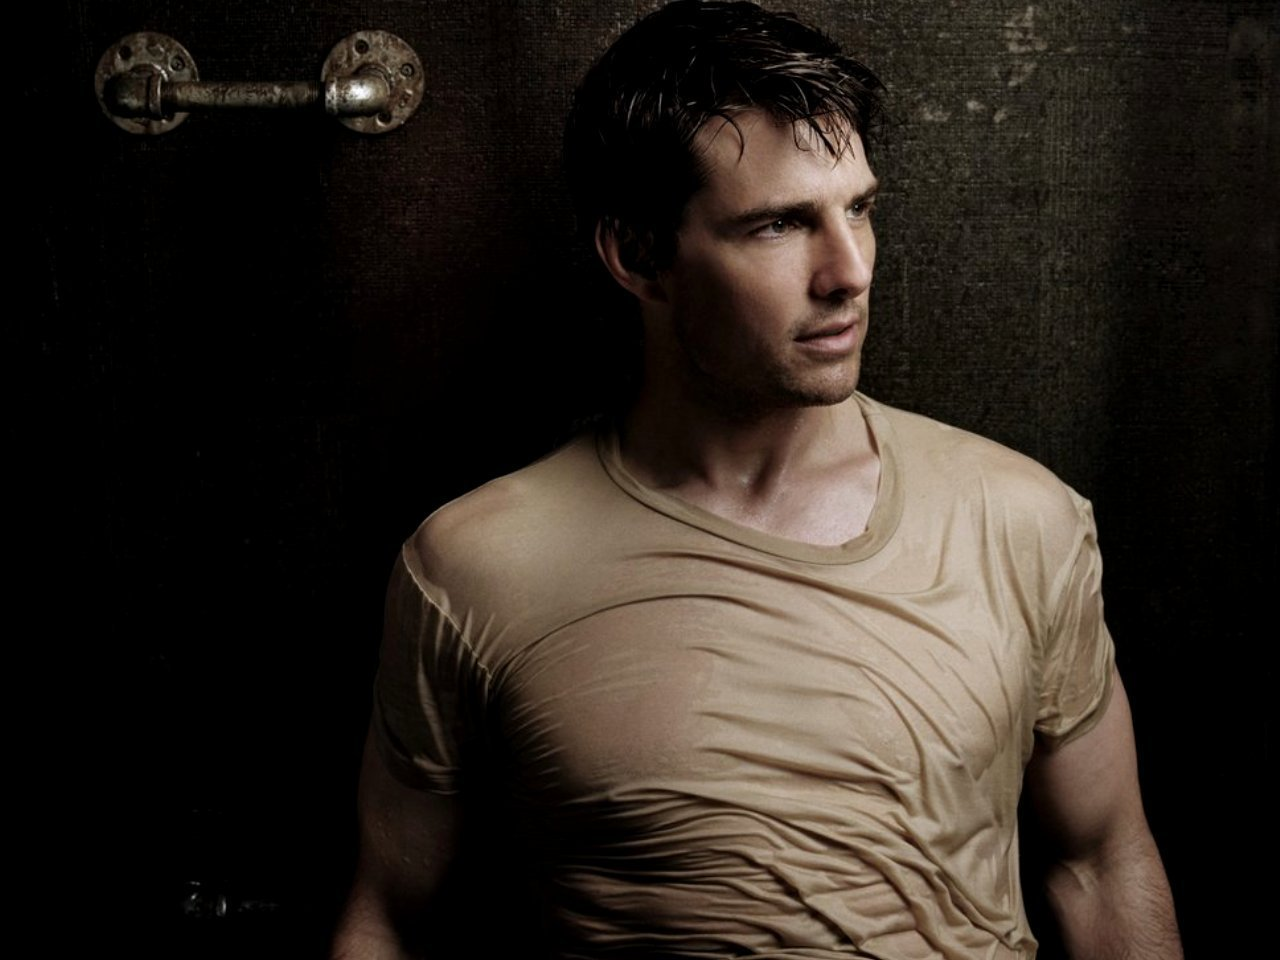 Wet Tom Cruise Celebrity